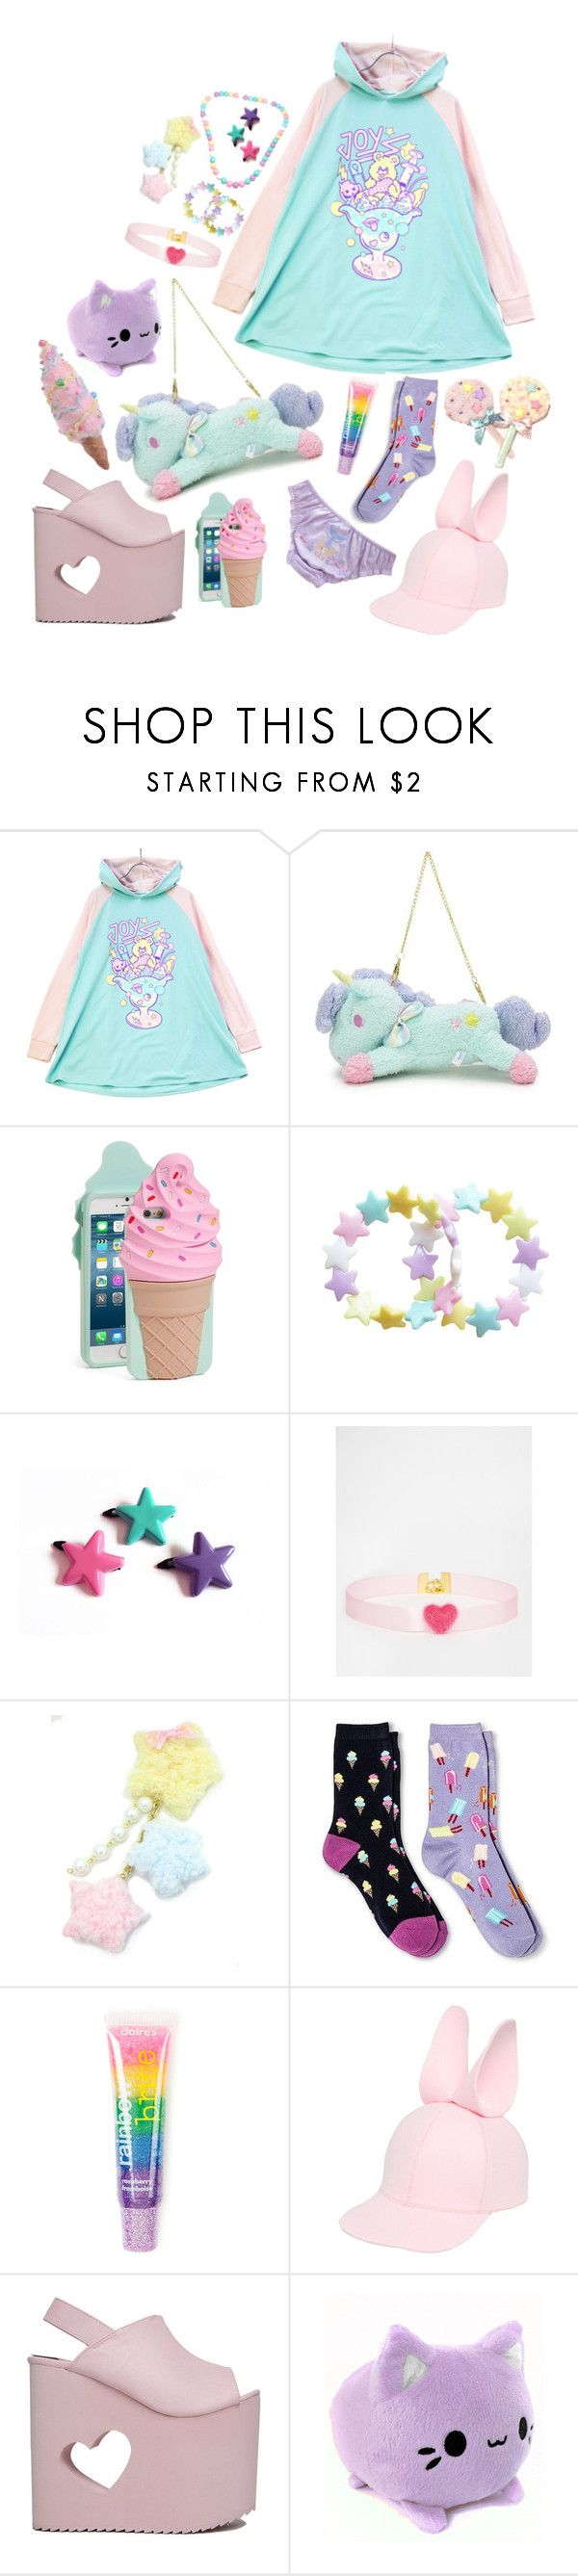 """""""kawaii かわいい 💞"""" by vitorialn ❤ liked on Polyvore featuring Kate Spade, Clips, Suzywan DELUXE, Davco, claire's, Francesco Ballestrazzi, Nikki Lipstick and Raz"""